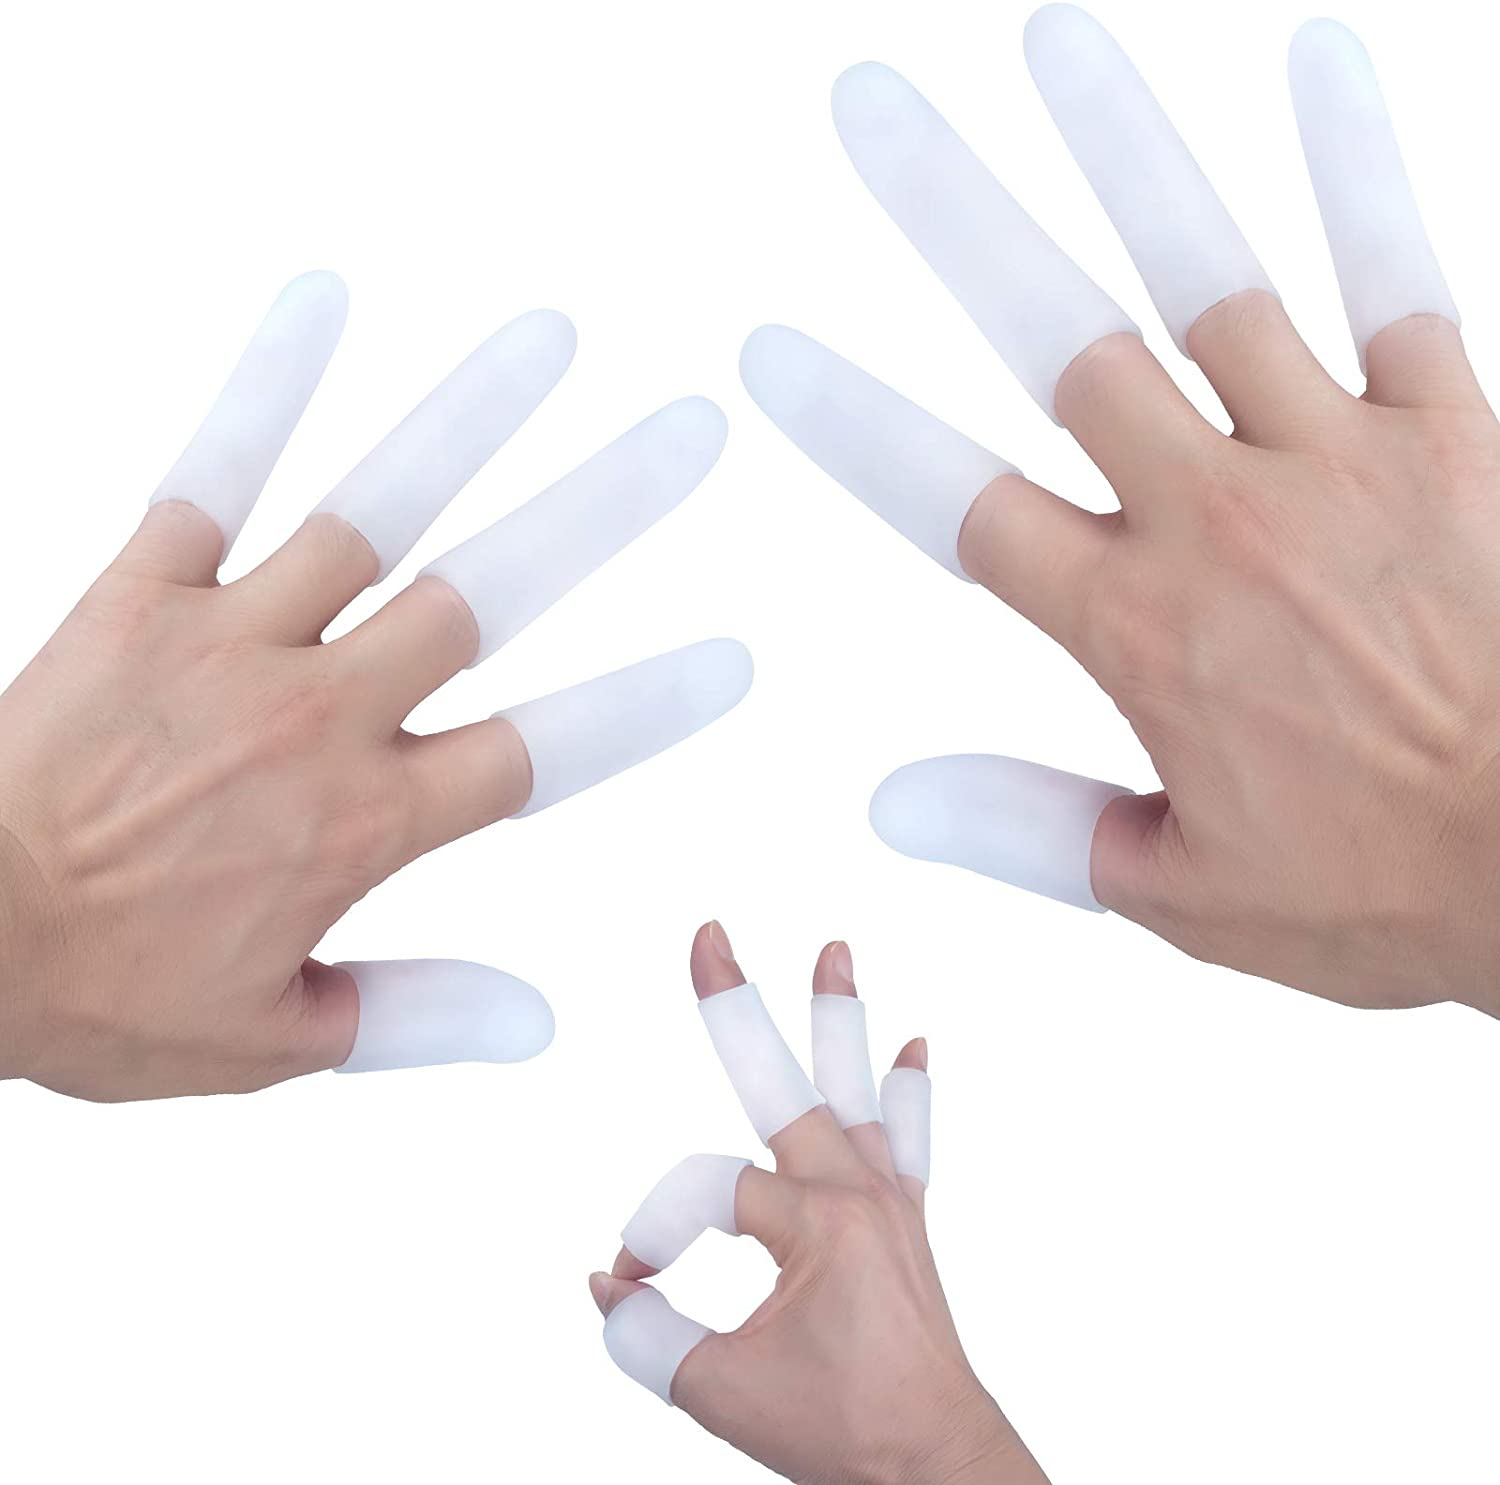 White Finger Cot Gel Finger Protector Finger Brace Support Finger Gloves Waterproof Finger Eczema Bandages for Trigger Finger Hand Eczema Finger Cracking Finger Arthritis